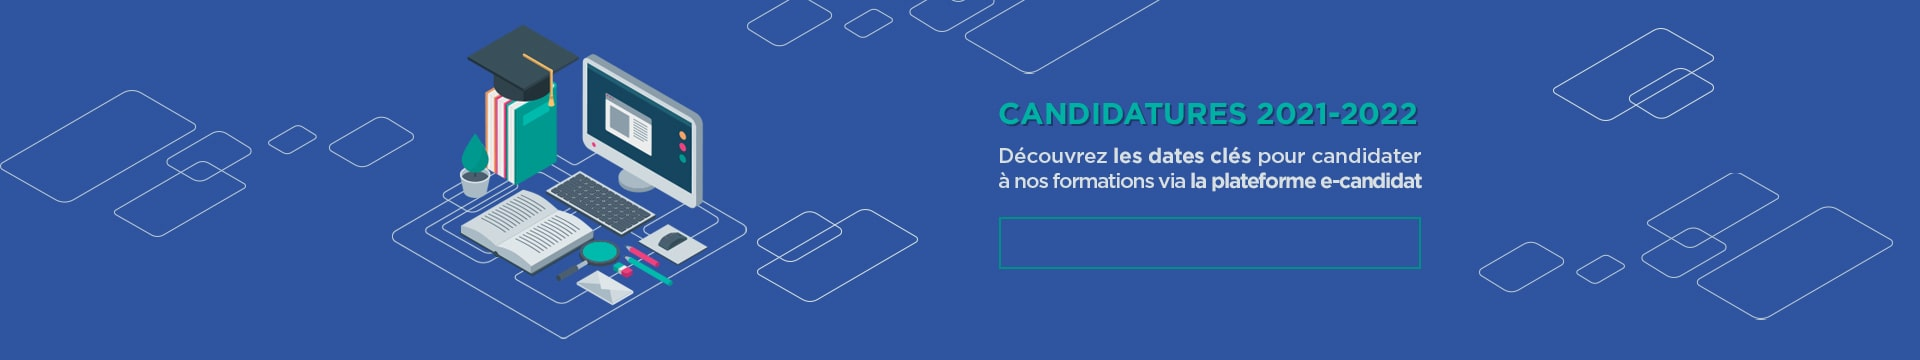 Candidatures 2021-2022 e-candidat - Montpellier Management